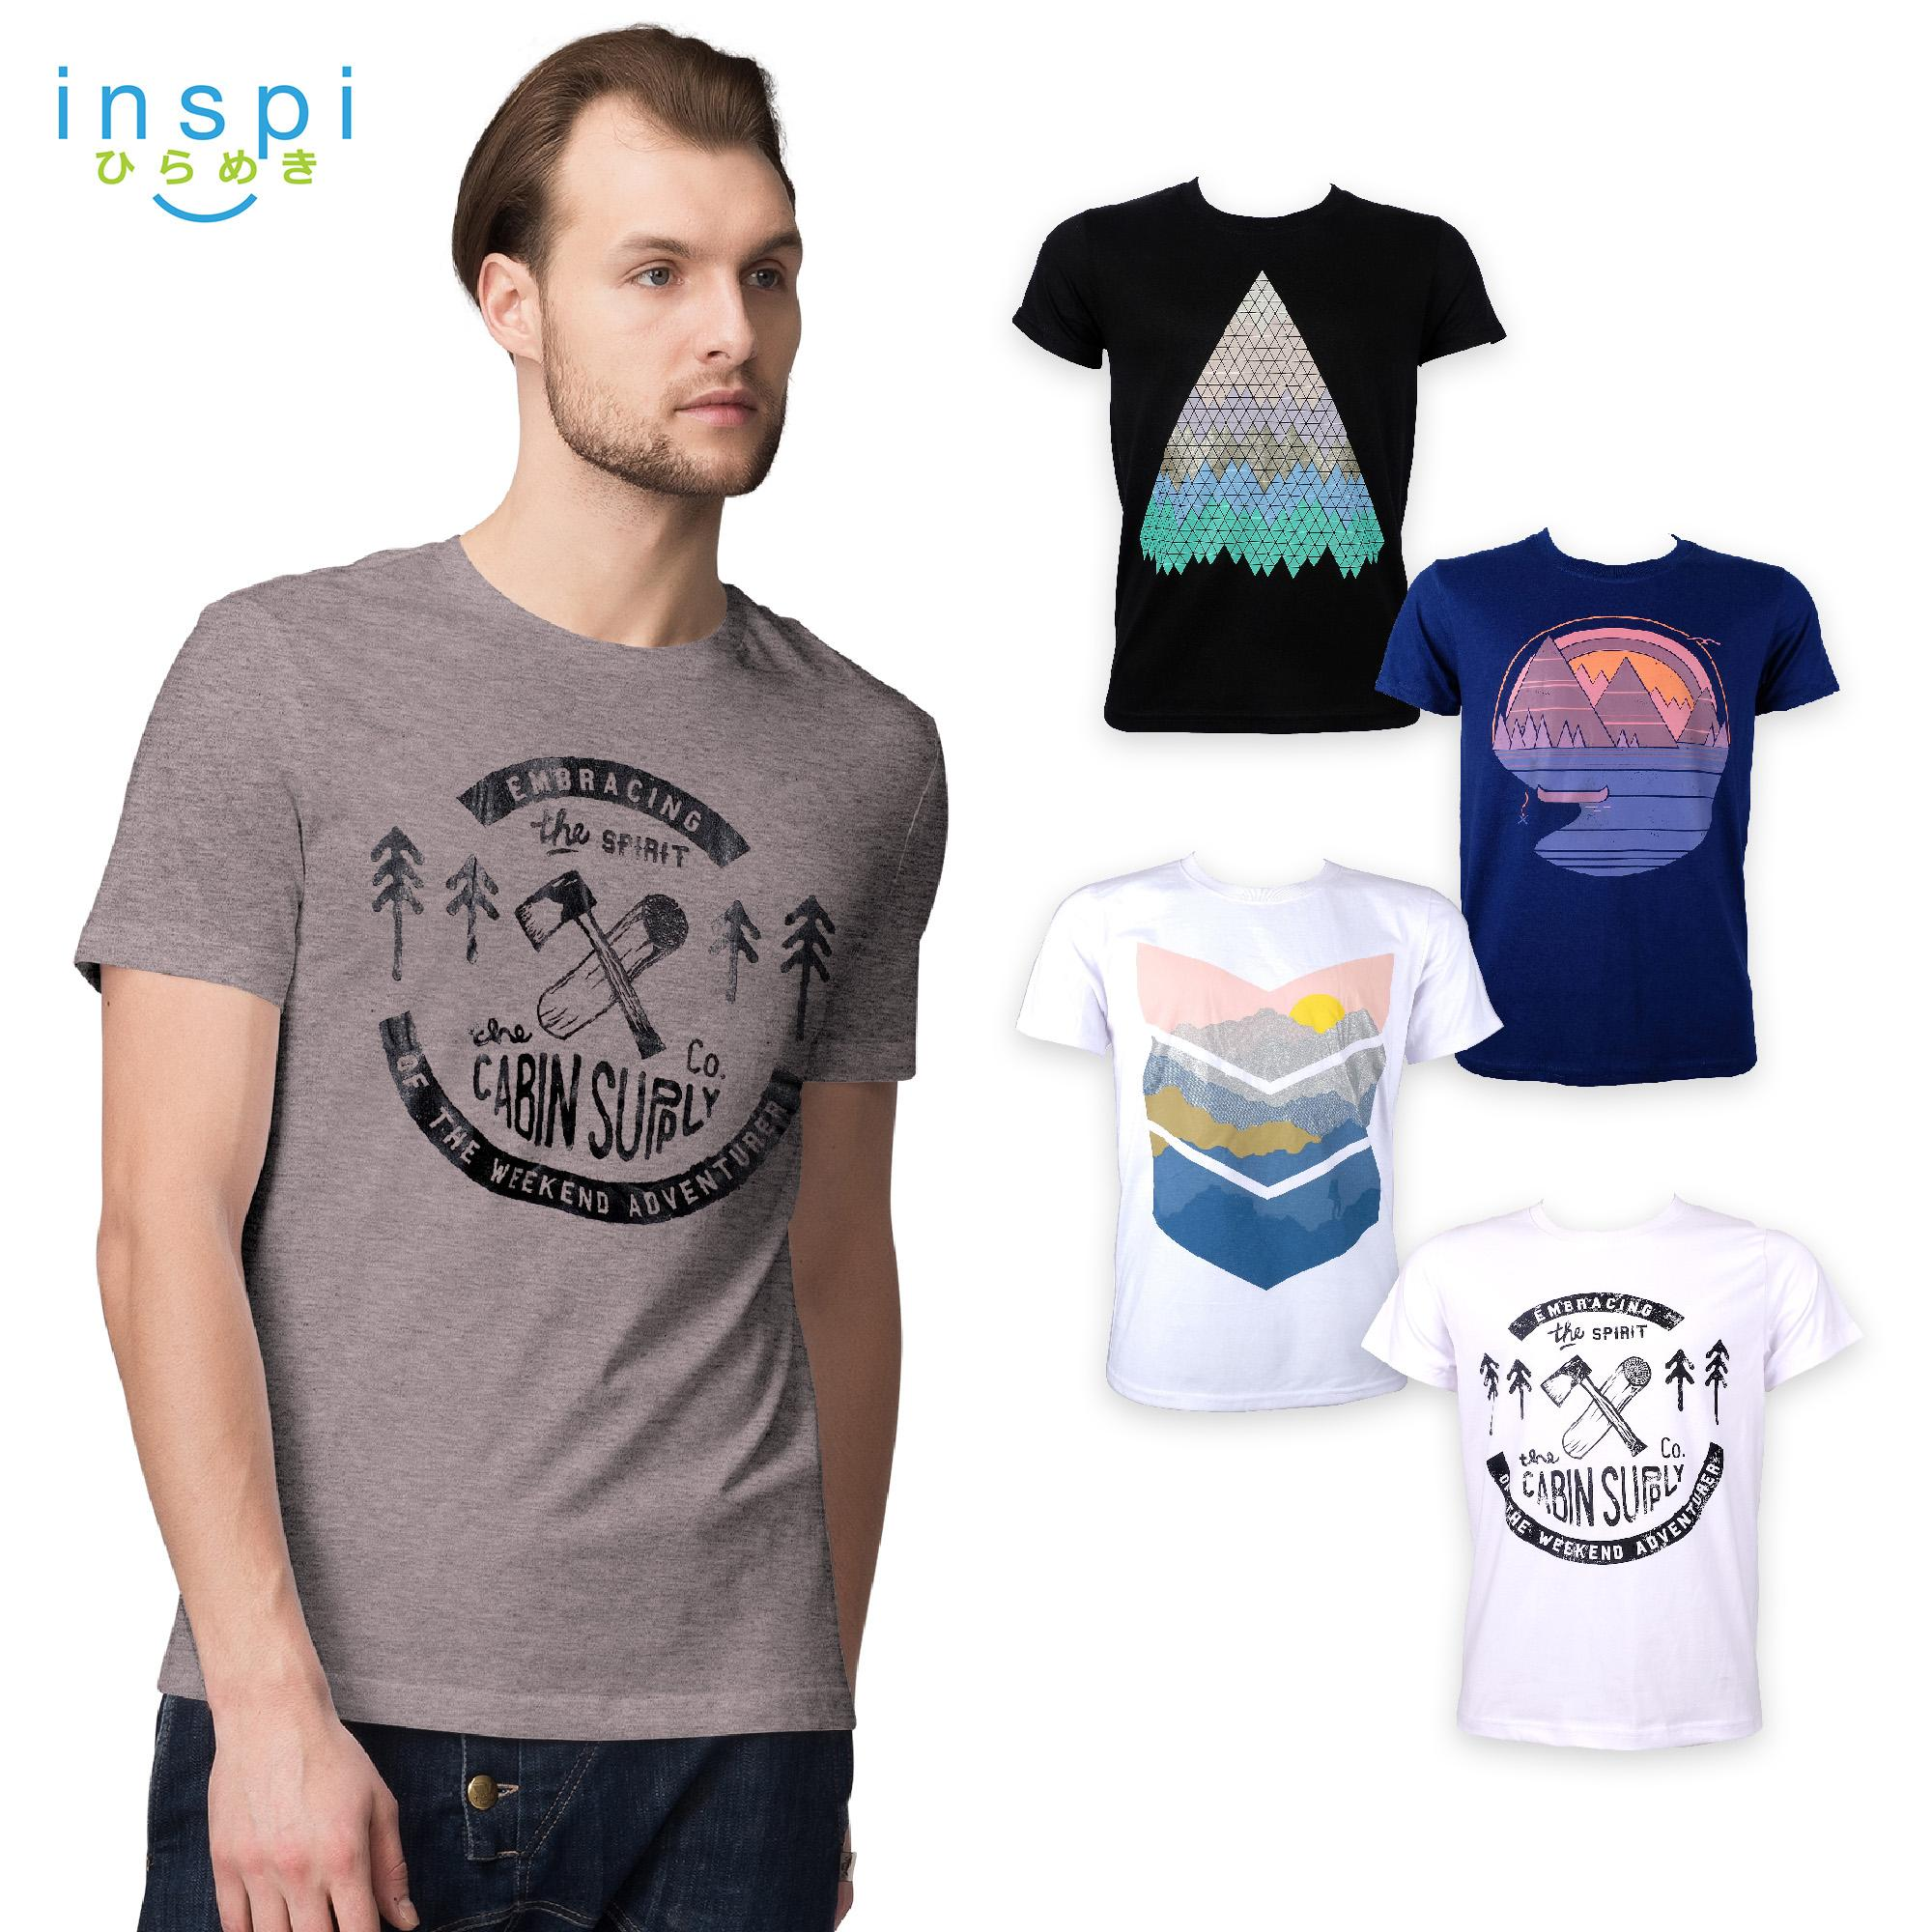 276b0d6c0a90 INSPI Tees Outdoors Collection tshirt printed graphic tee Mens t shirt  shirts for men tshirts sale